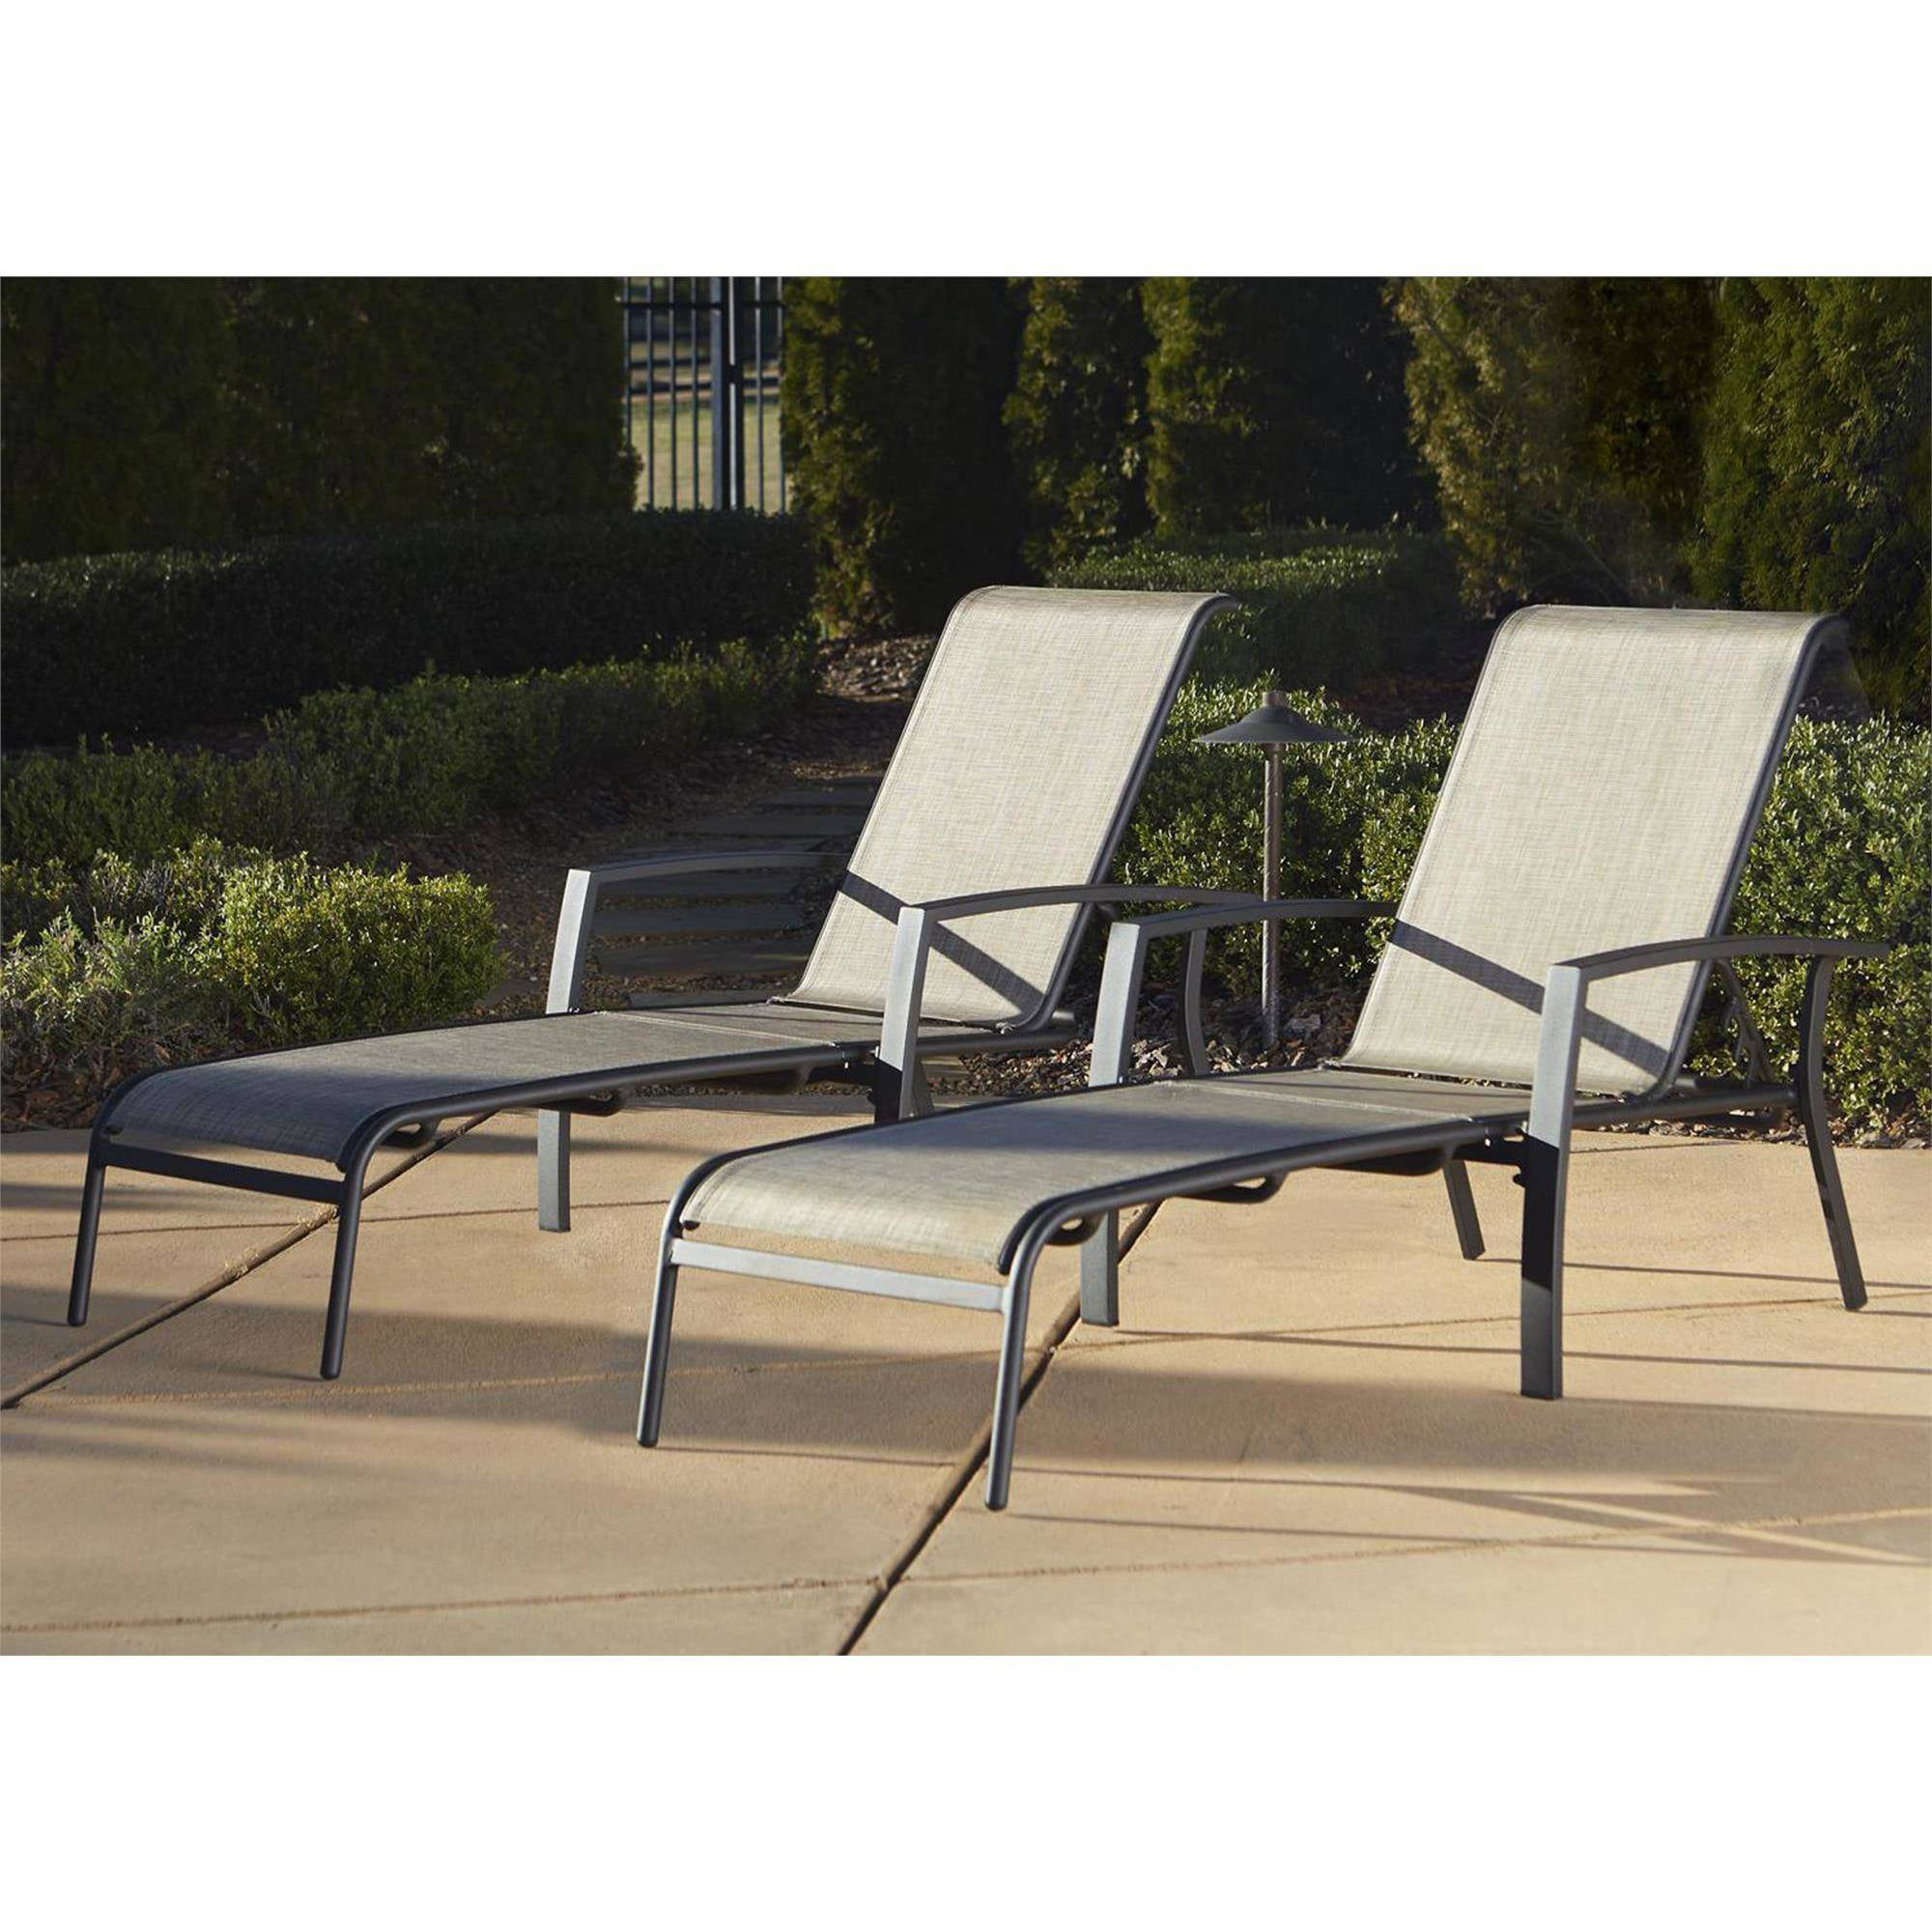 cosco outdoor adjustable aluminum chaise lounge chair serene ridge set 2 pack dark brown walmartcom